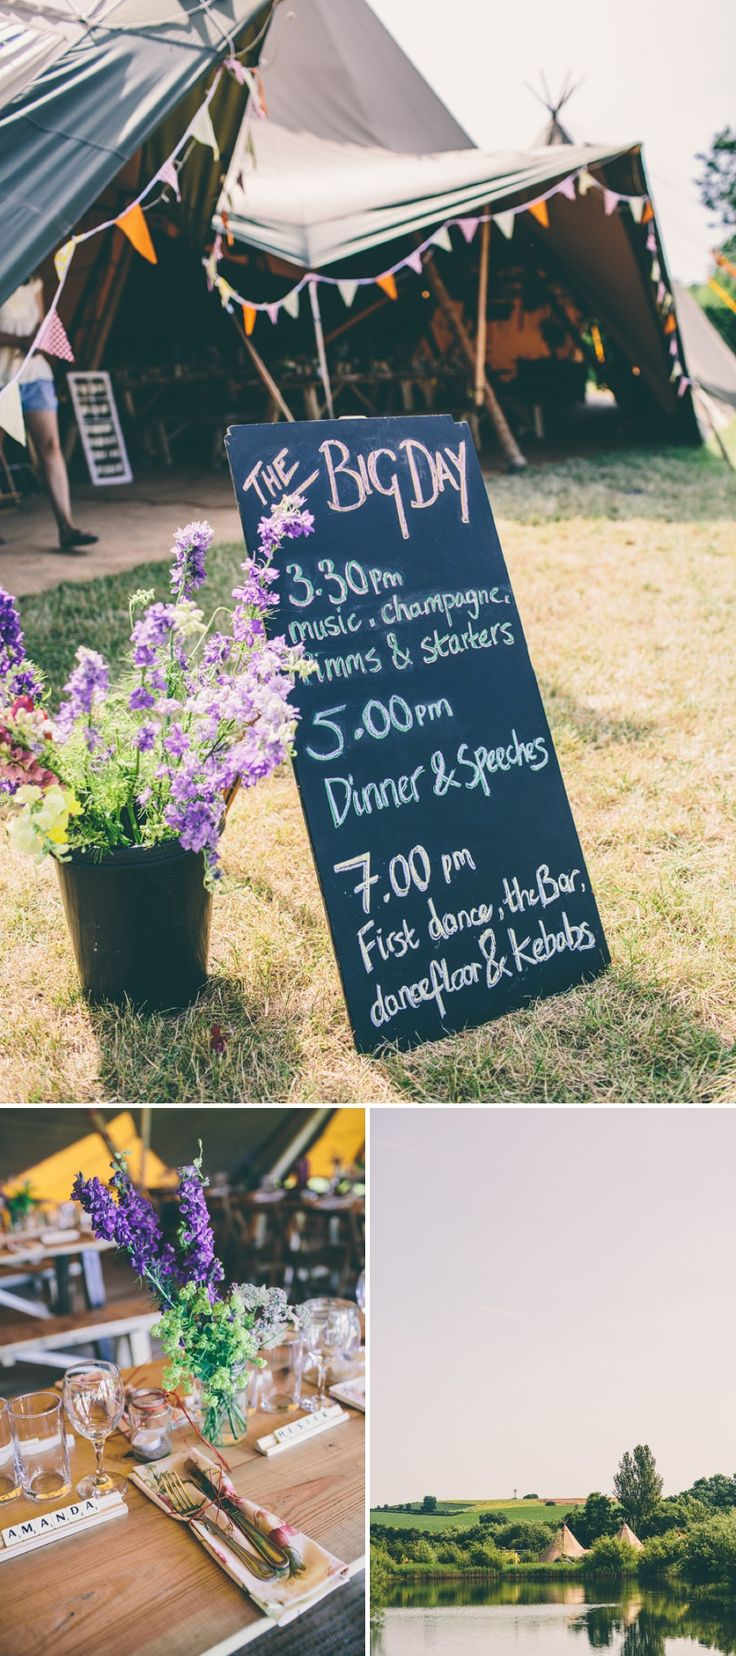 A Maid Marian Festival Inspired Wedding At Glebe Farm, Gunthorpe, UK. I love this wedding!